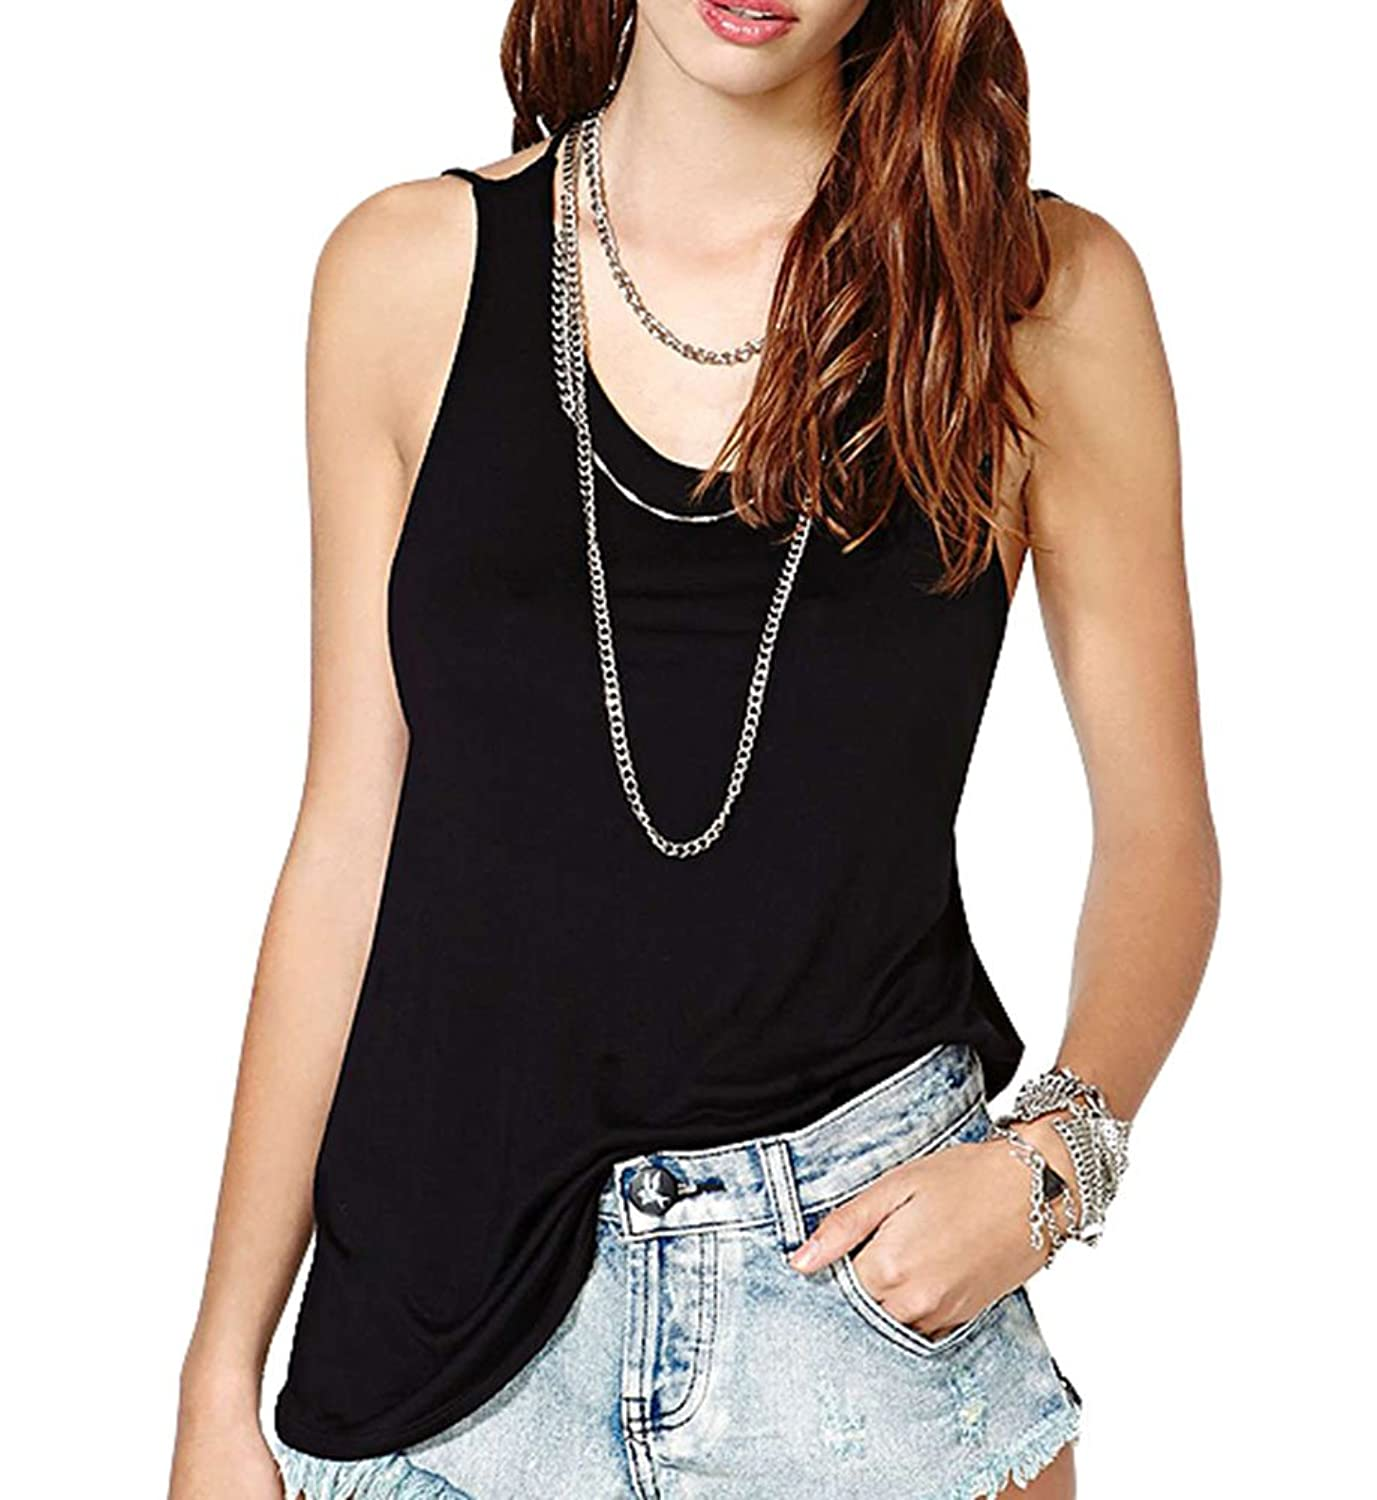 Popuus Women's Casual Pullover Loose Cotton T-Shirt Tank Top Camisole Black